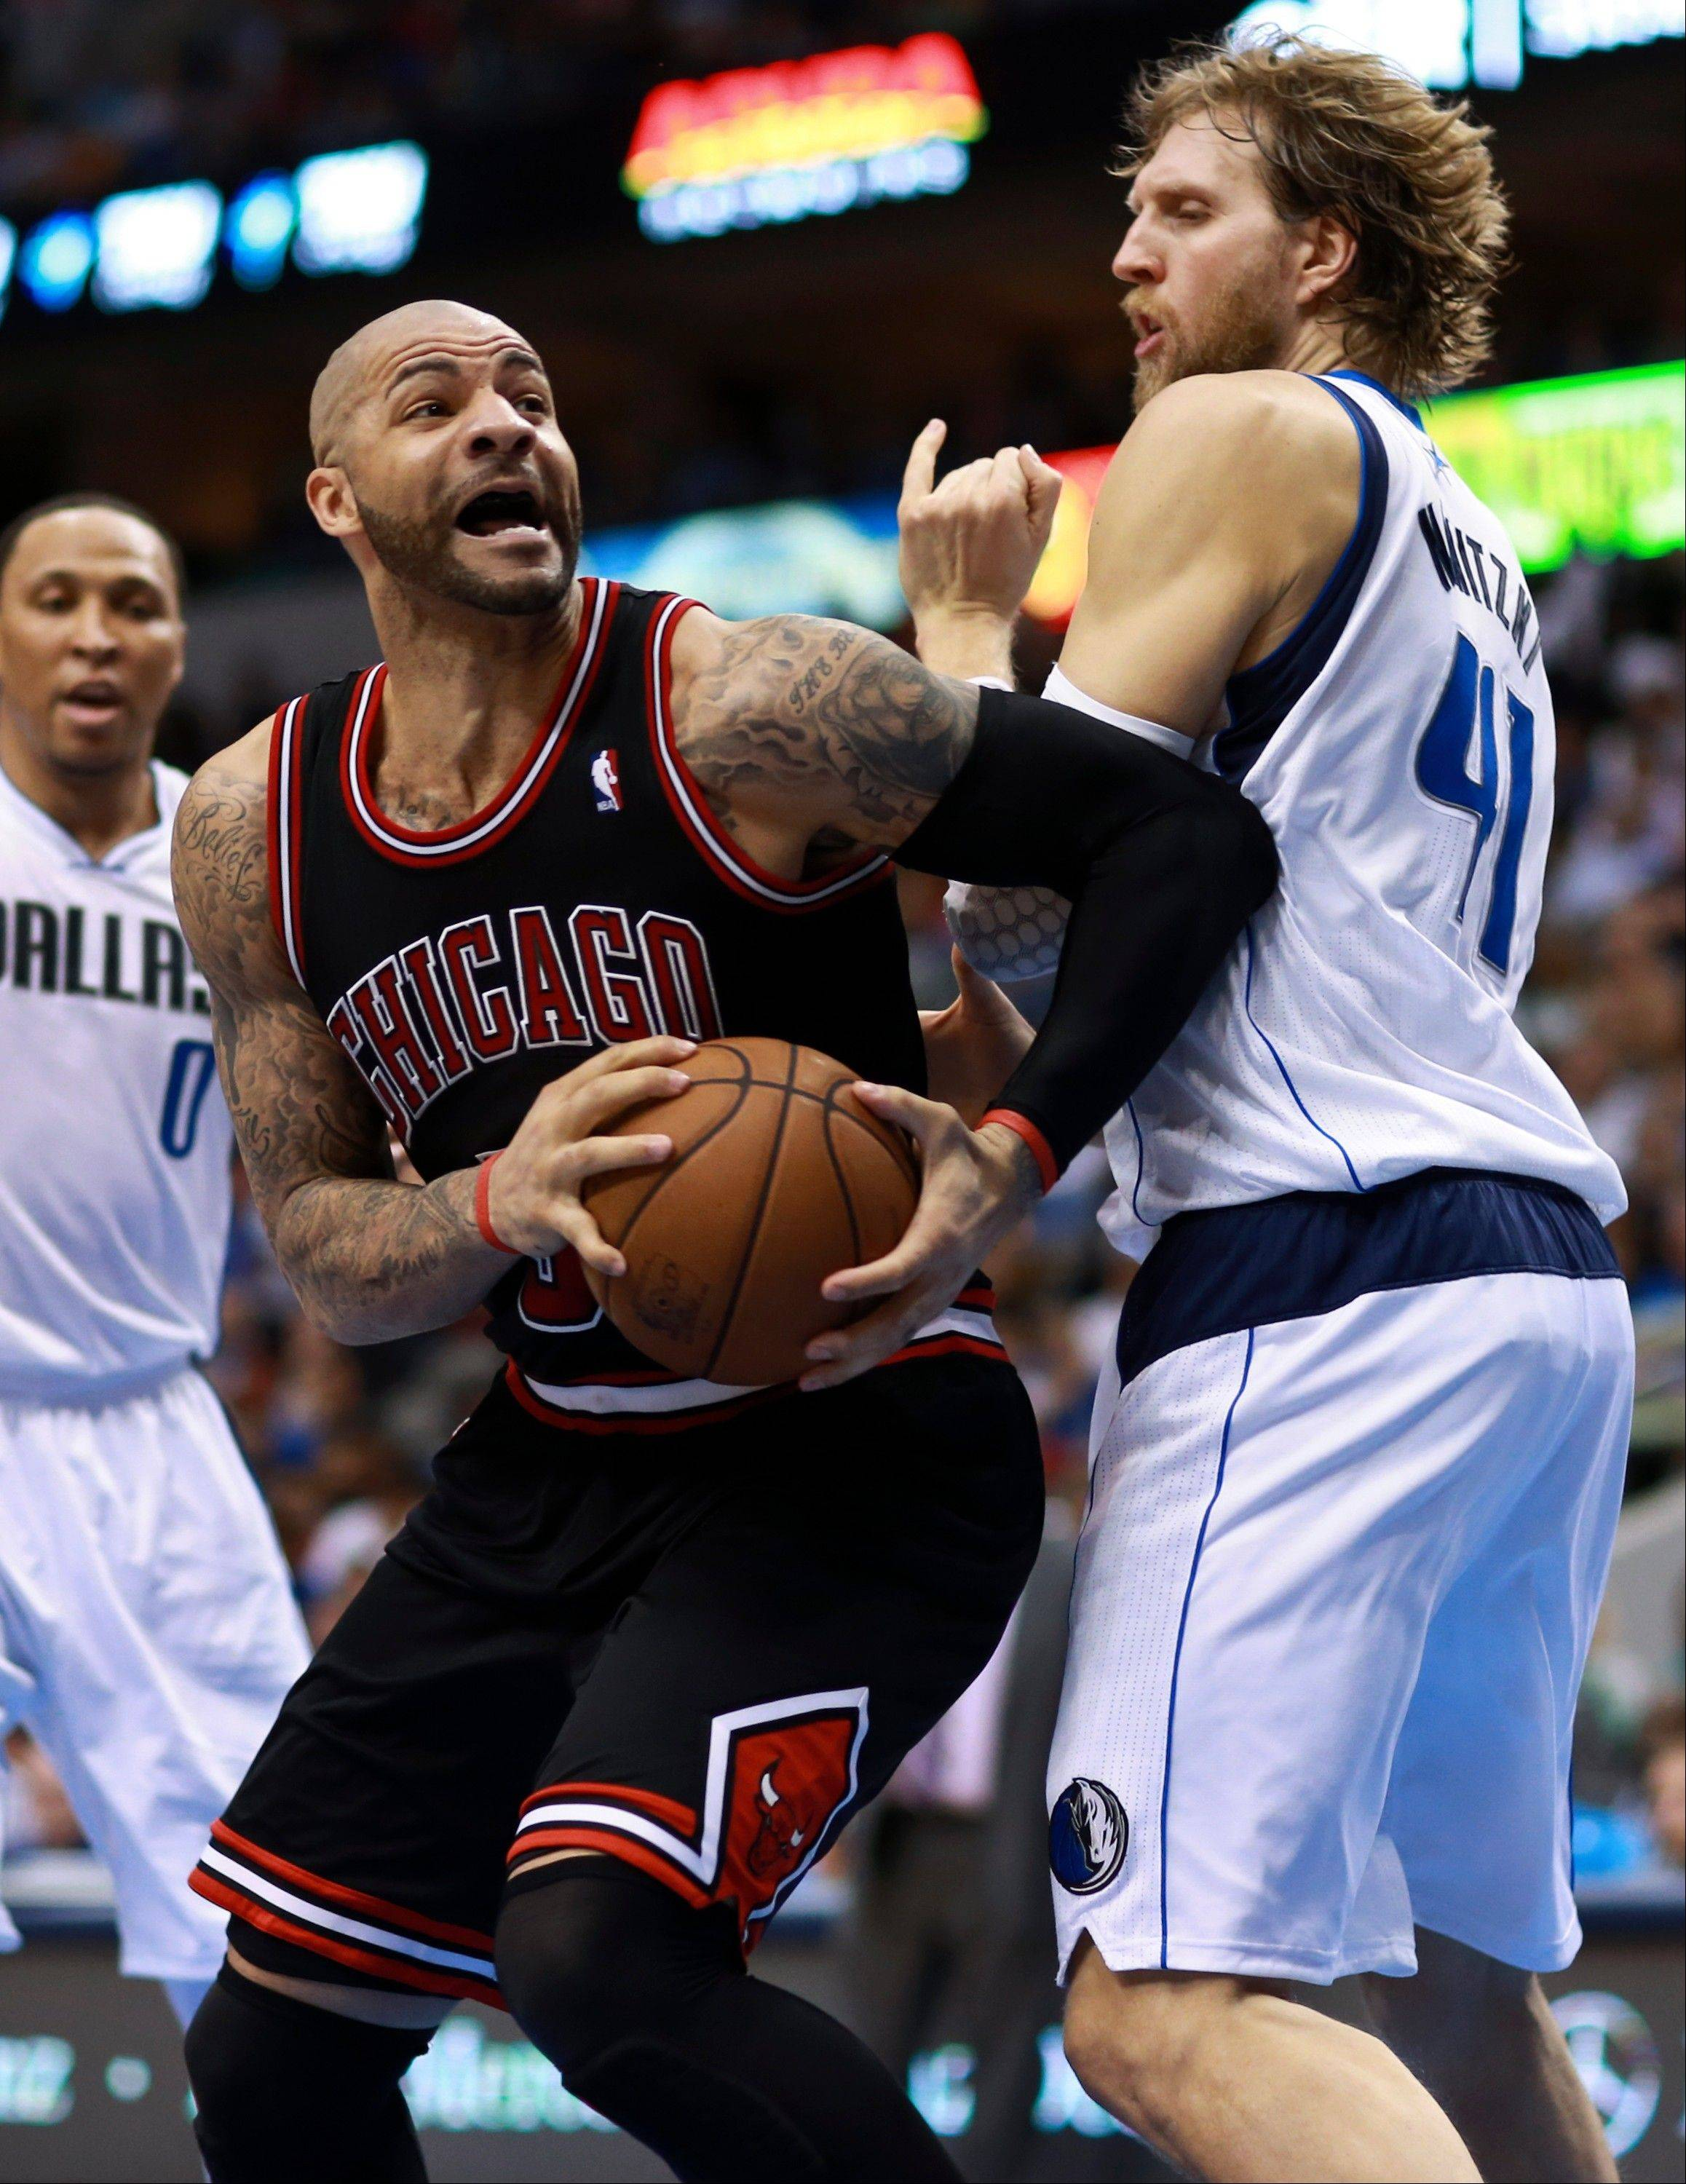 Chicago Bulls forward Carlos Boozer, center, is fouled by Dallas Mavericks forward Dirk Nowitzki (41), of Germany, under the net during the first half of an NBA basketball game, Saturday, March 30, 2013, in Dallas. Mavericks' Shawn Marion (0) is at left.